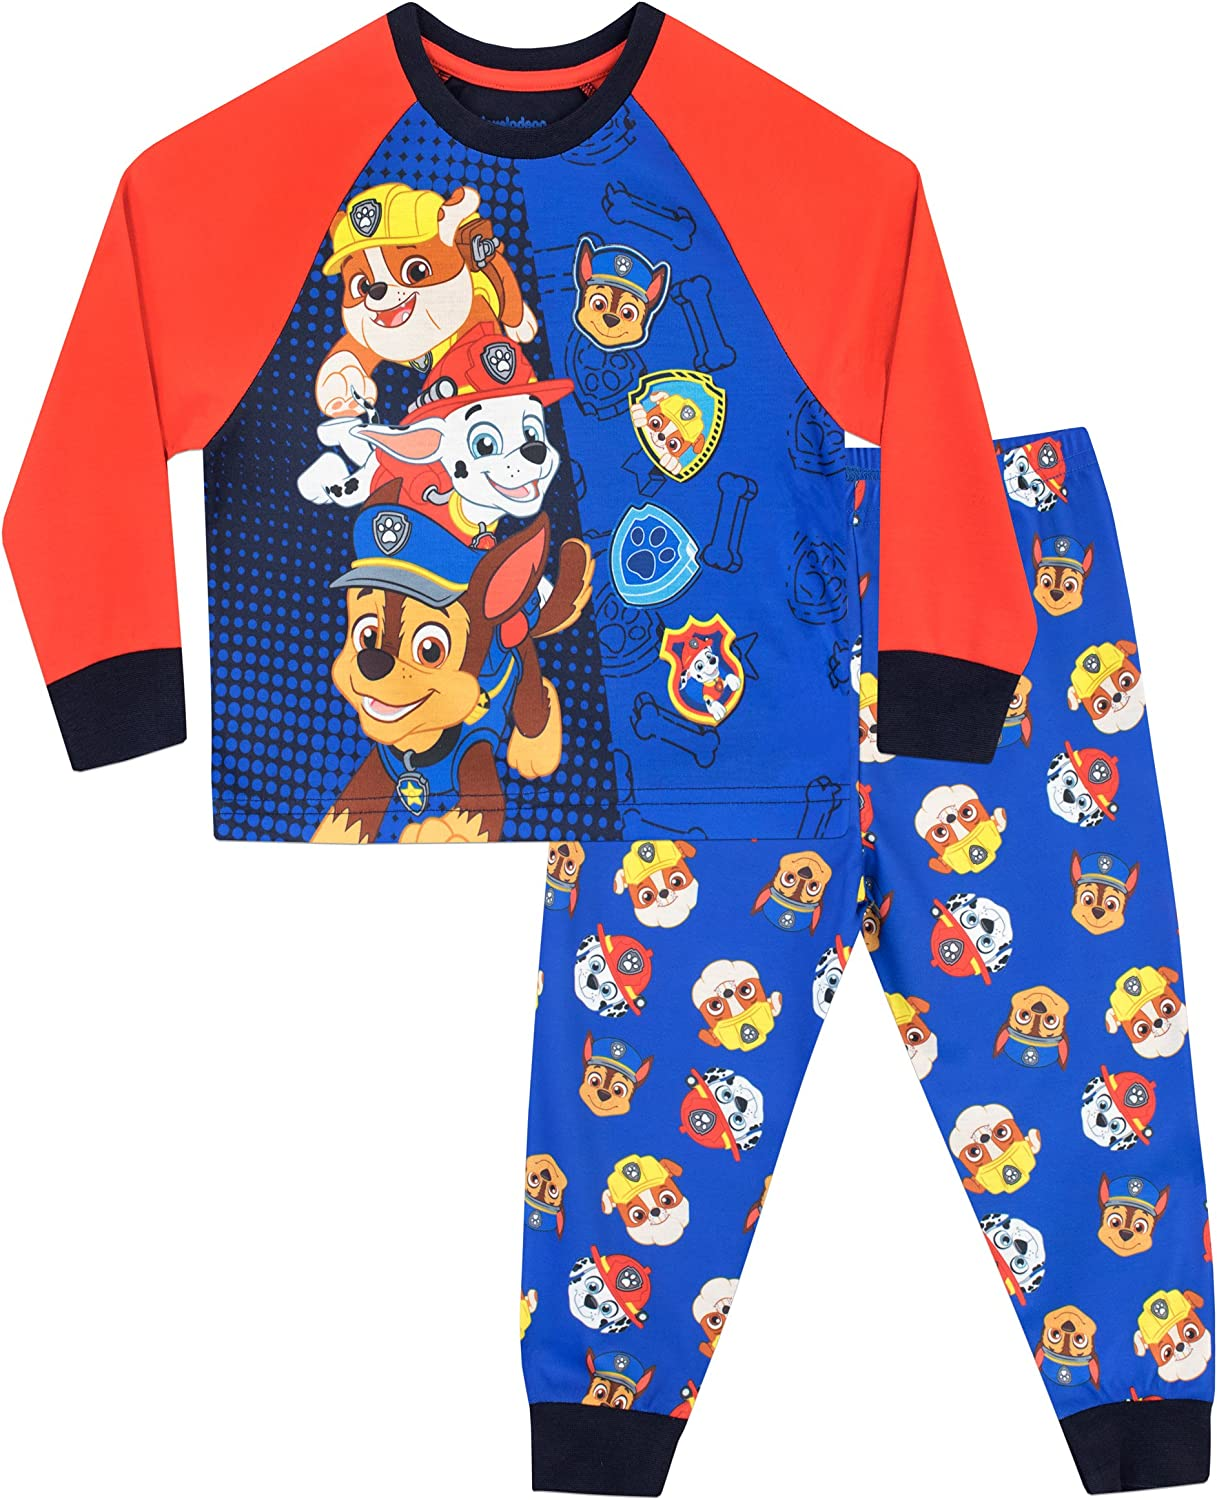 Official Chase Paw Patrol Boys Long Sleeve Top Age 4 Years